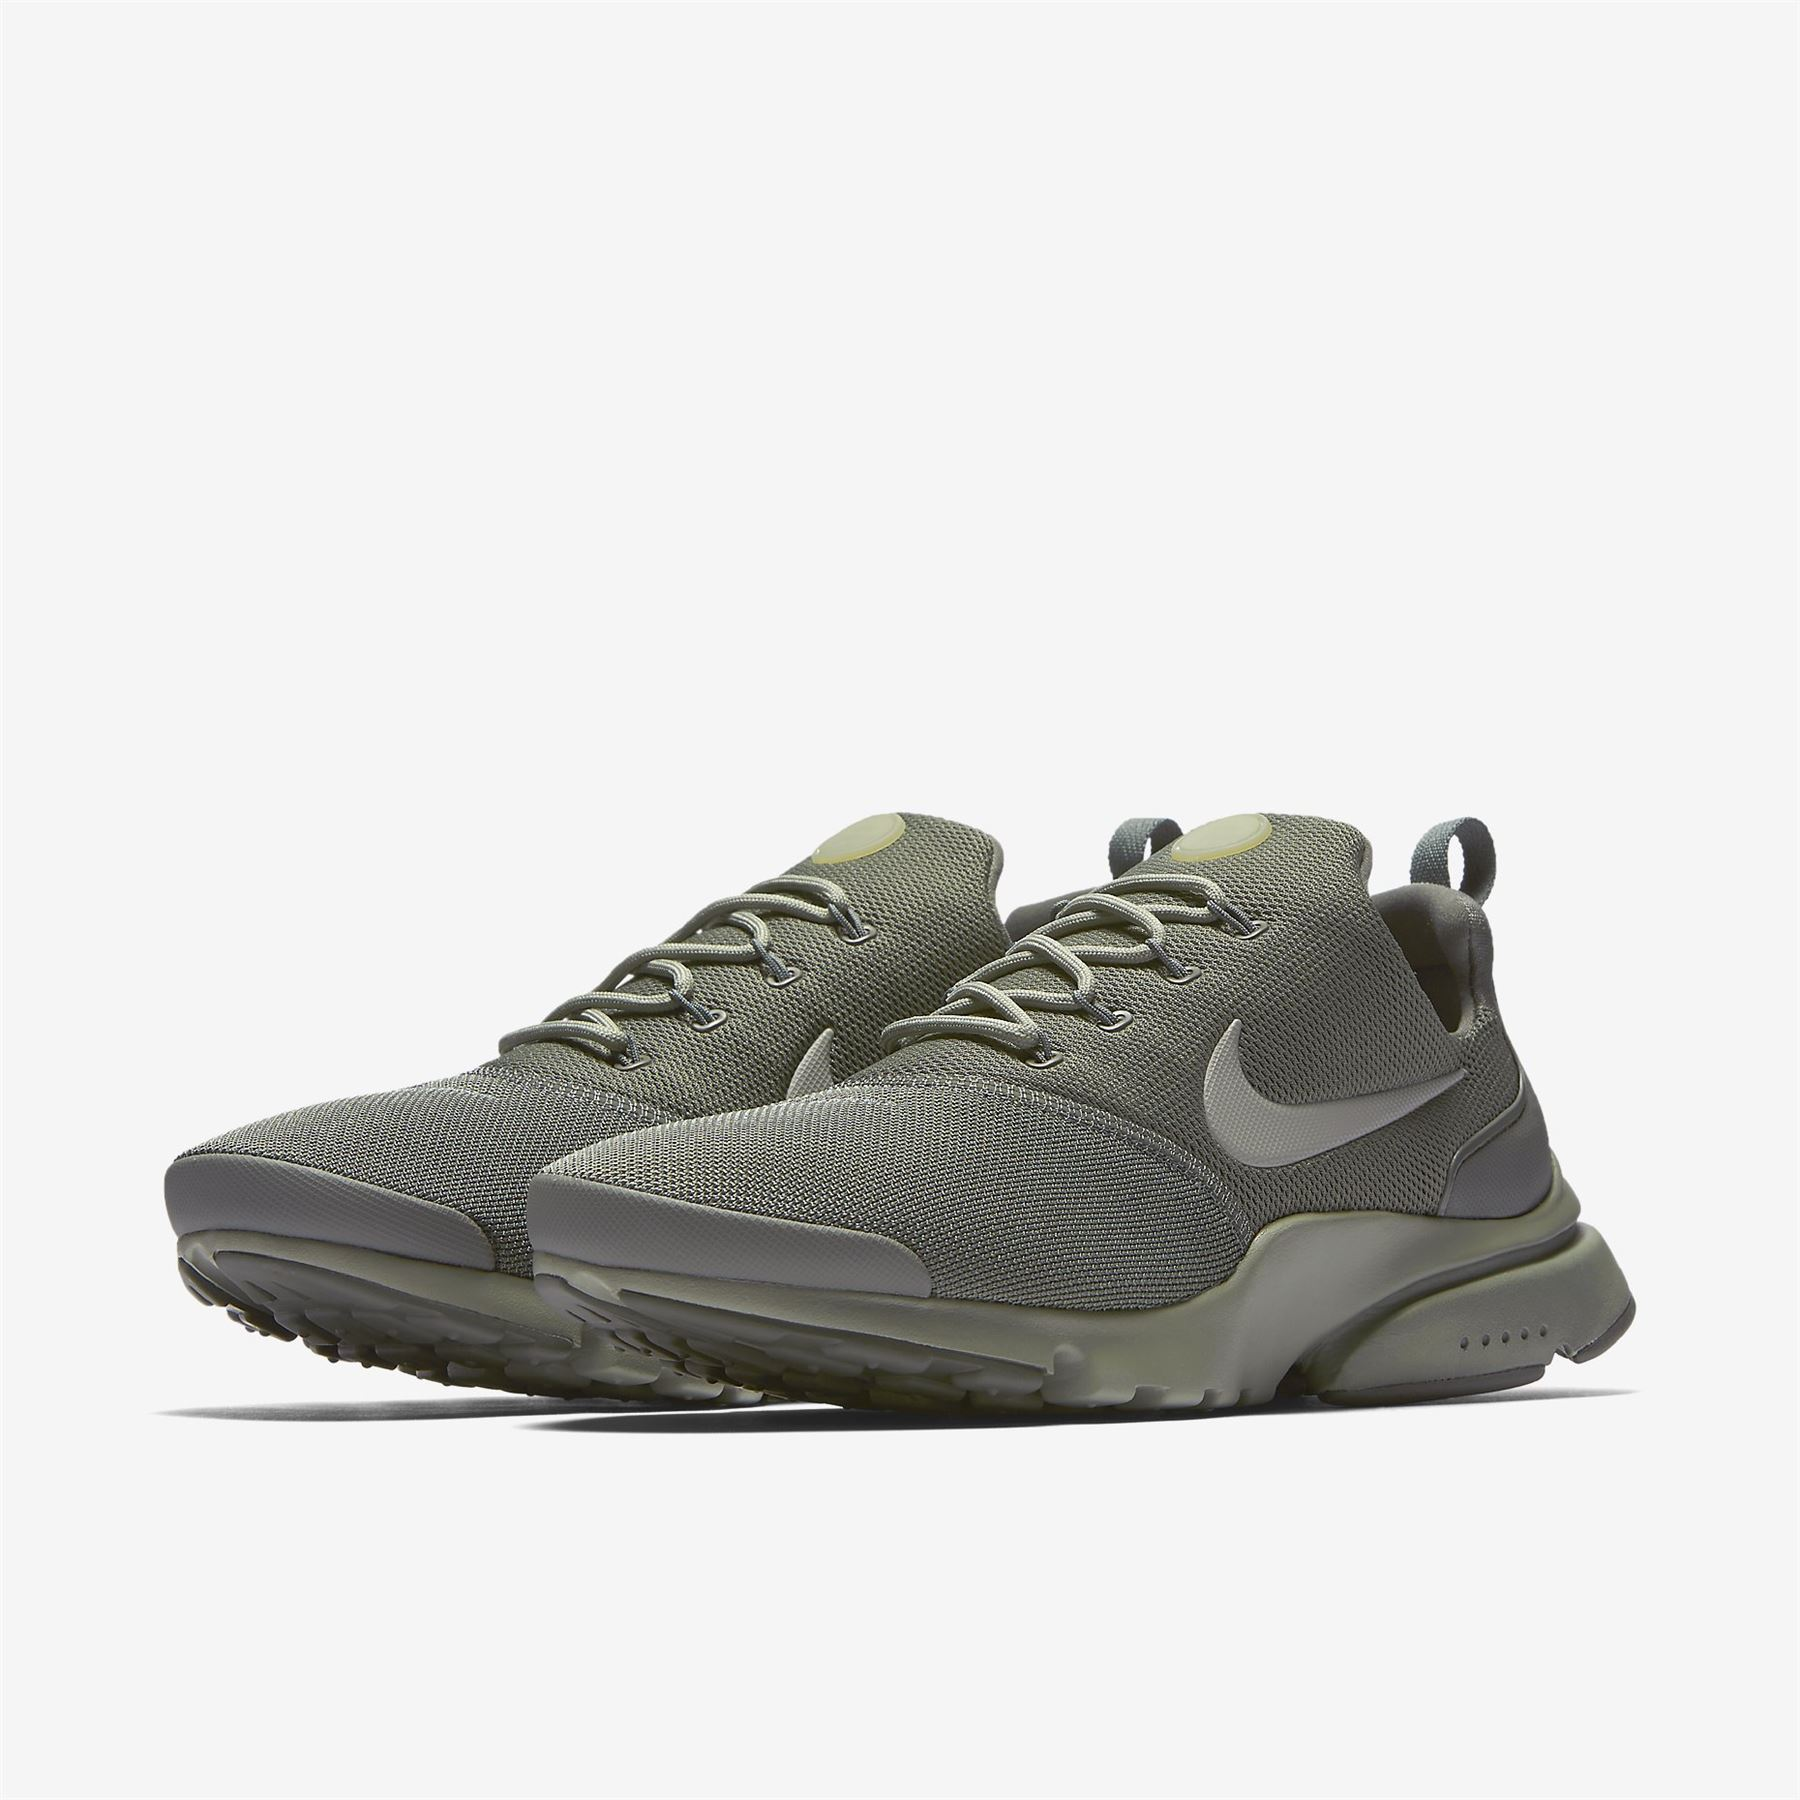 19a33ec2cab8 Details about NIKE PRESTO FLY 908019 009 GREY MEN S UK 6-11